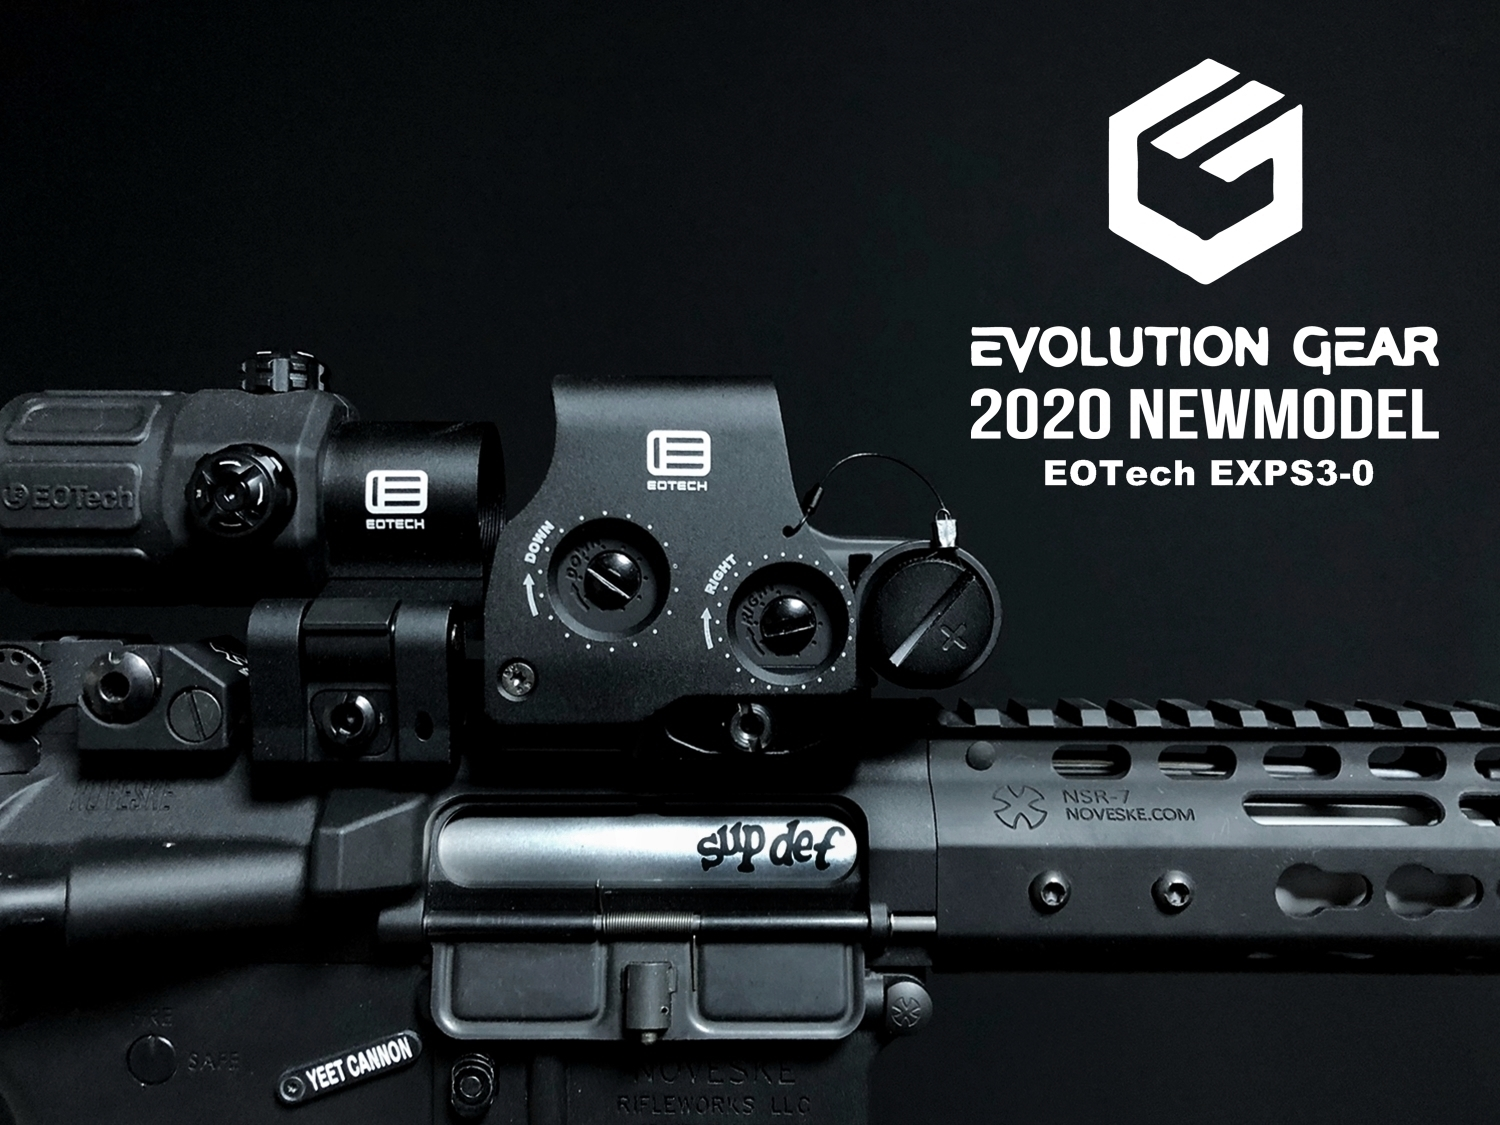 000 EVOLUTION GEAR 2020 改良版 EOTech EXPS3-0 NEW!! 最新リアルバージョンの改良点を徹底検証だ!! 新エボギア & 旧エボギア & 実物 イオテック ホロサイト!! 開封 比較 検証 取付 レビュー!!